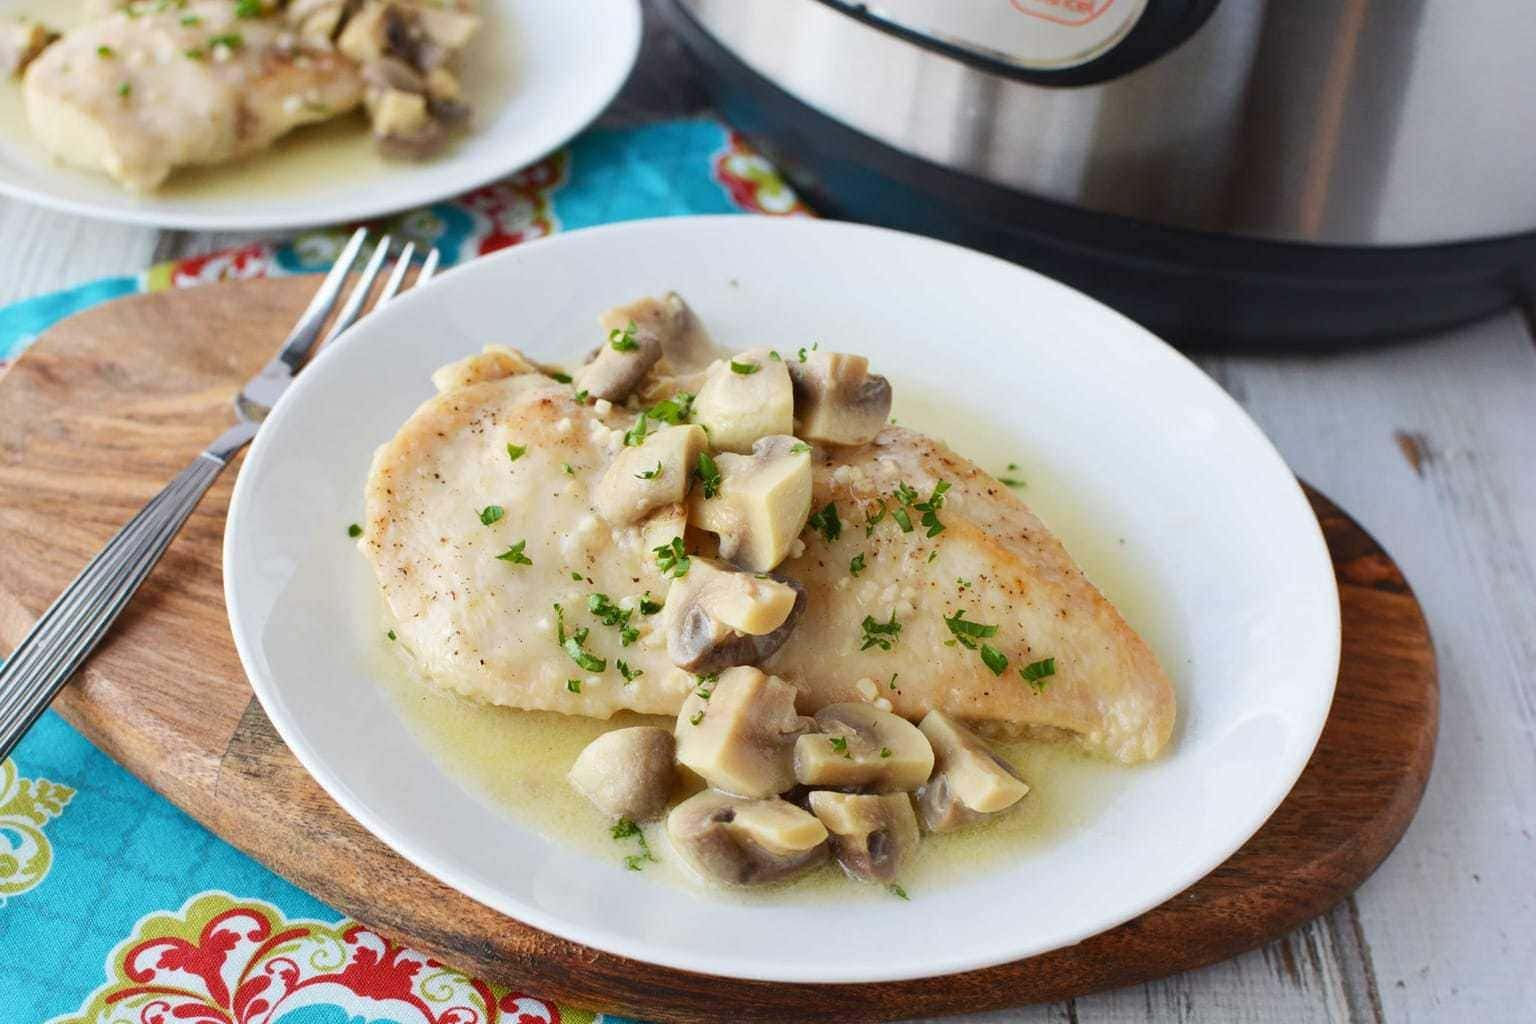 Instant Pot Chicken With Marsala Wine – Truly a Delicious and Flavorful Dish